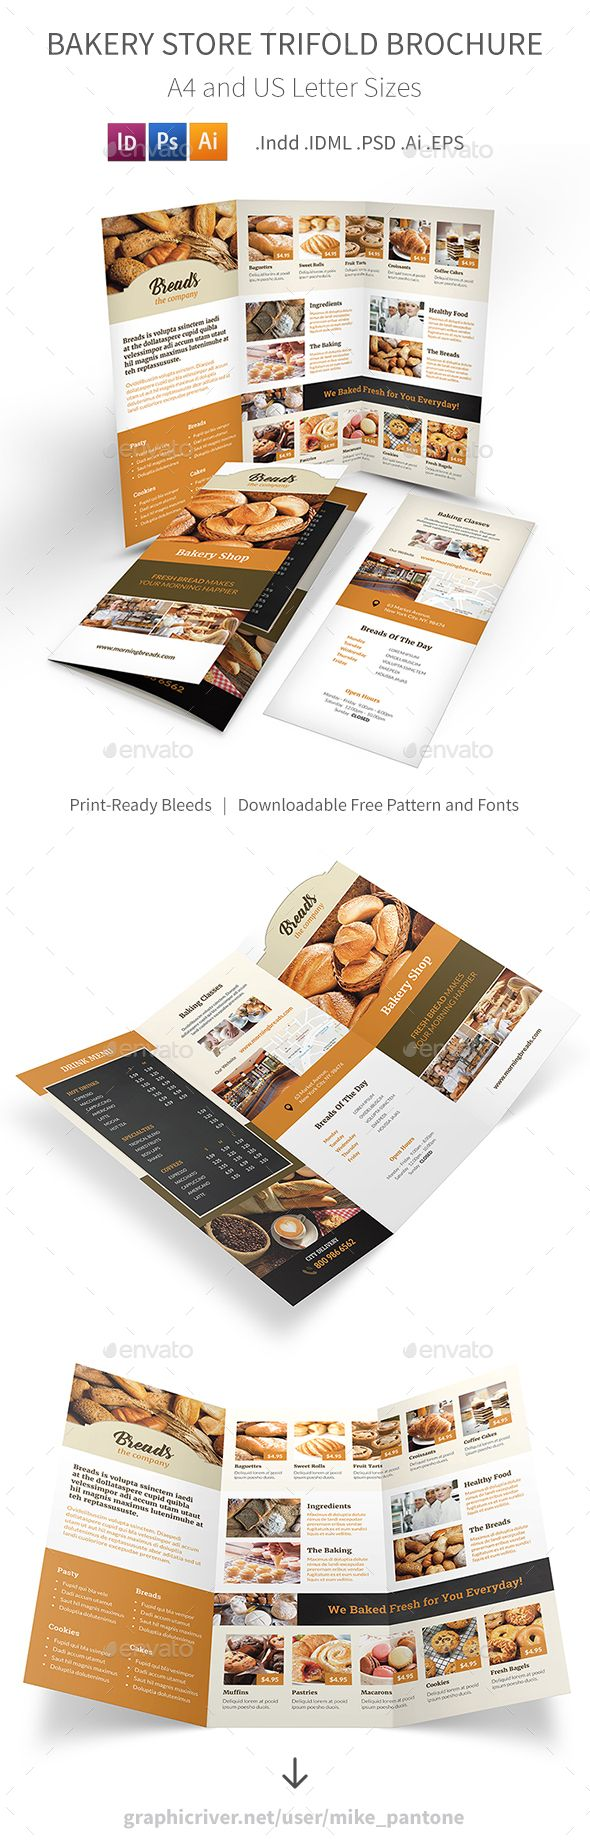 Bakery Store Trifold Brochure 2 — Photoshop PSD #donut #baked • Download ➝ https://graphicriver.net/item/bakery-store-trifold-brochure-2/19408010?ref=pxcr